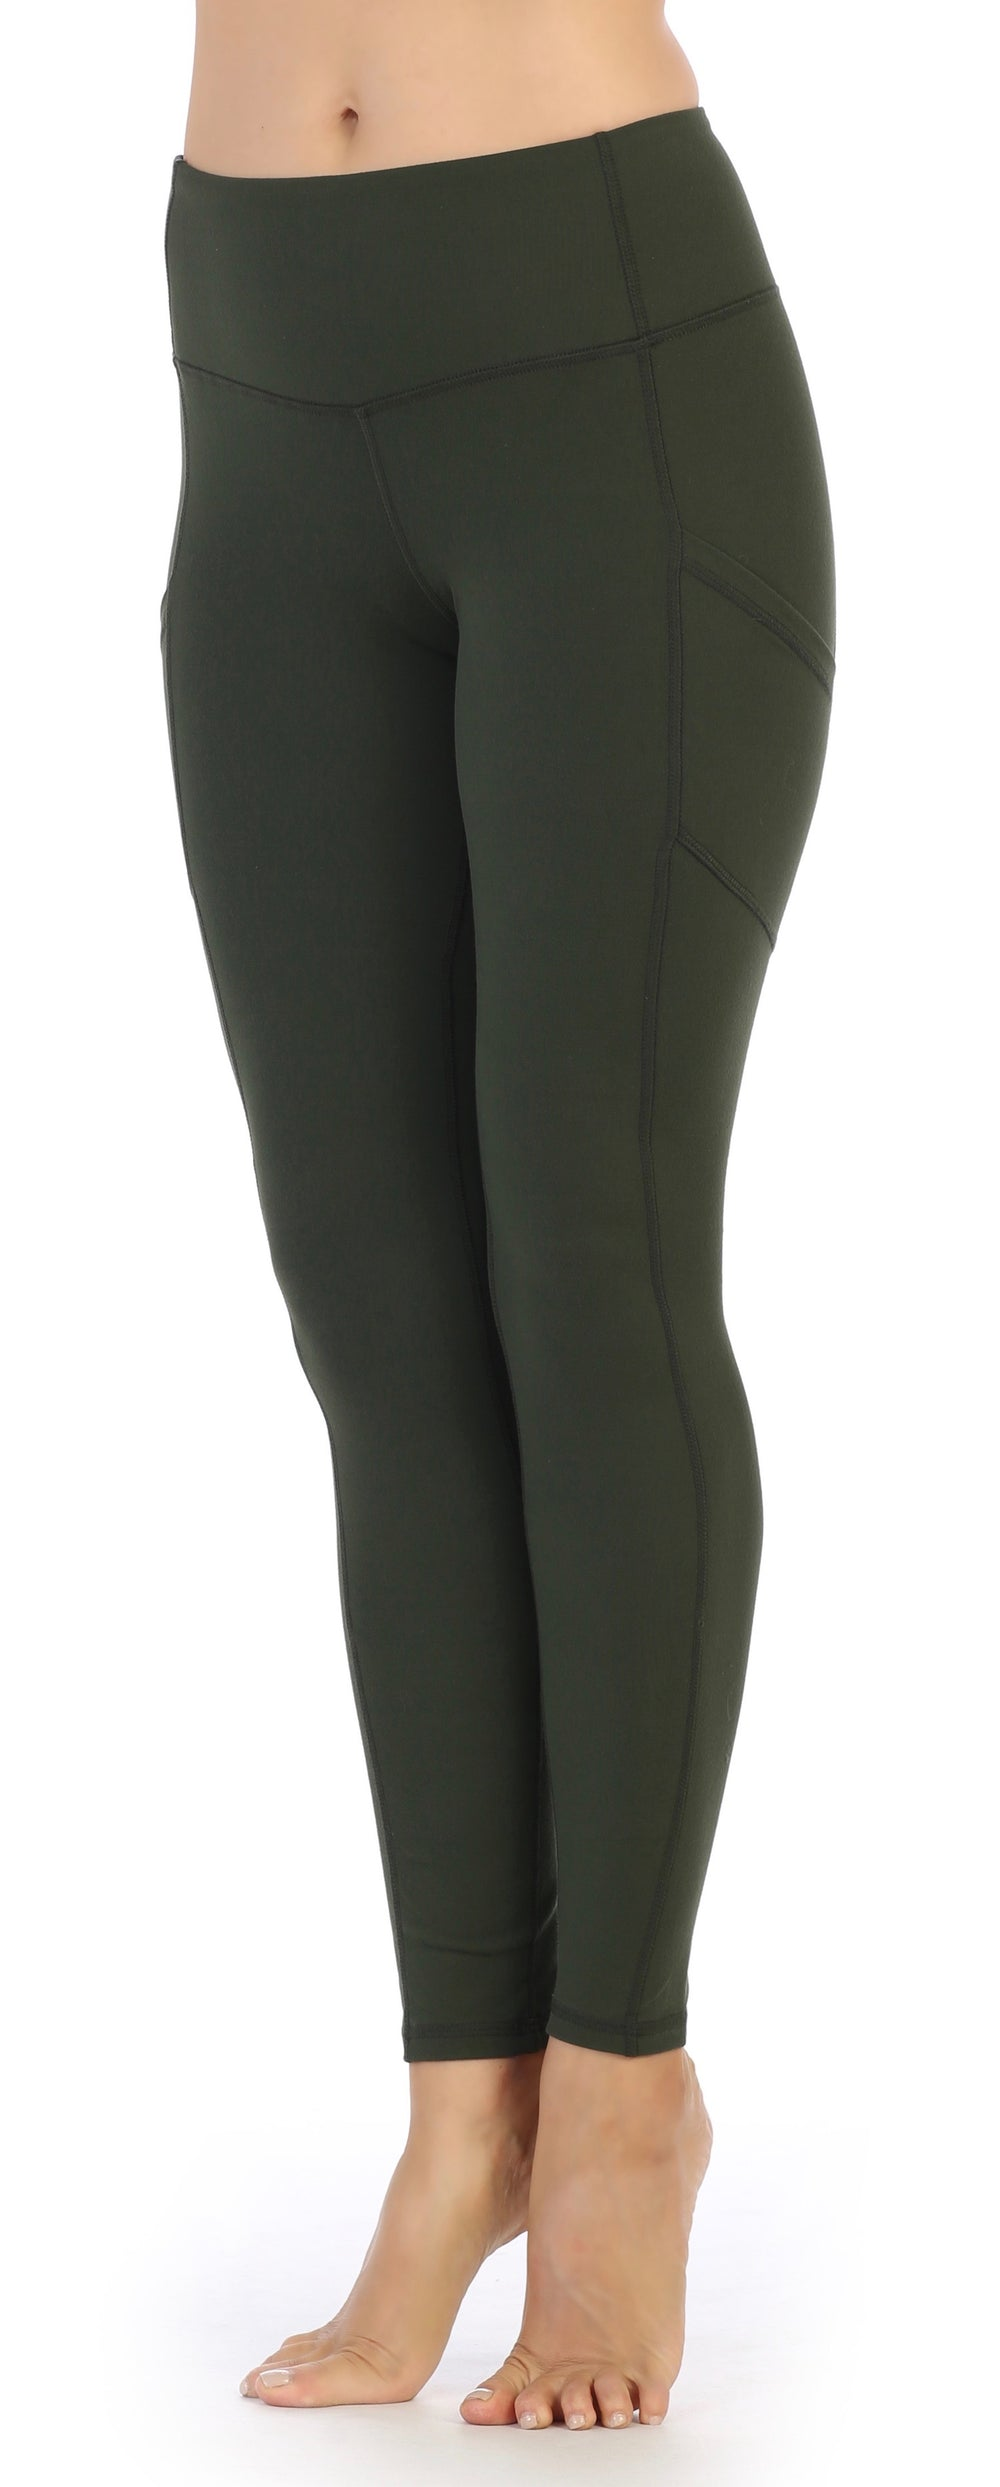 Olive-High Waist-Pocket Compression Full Length Leggings